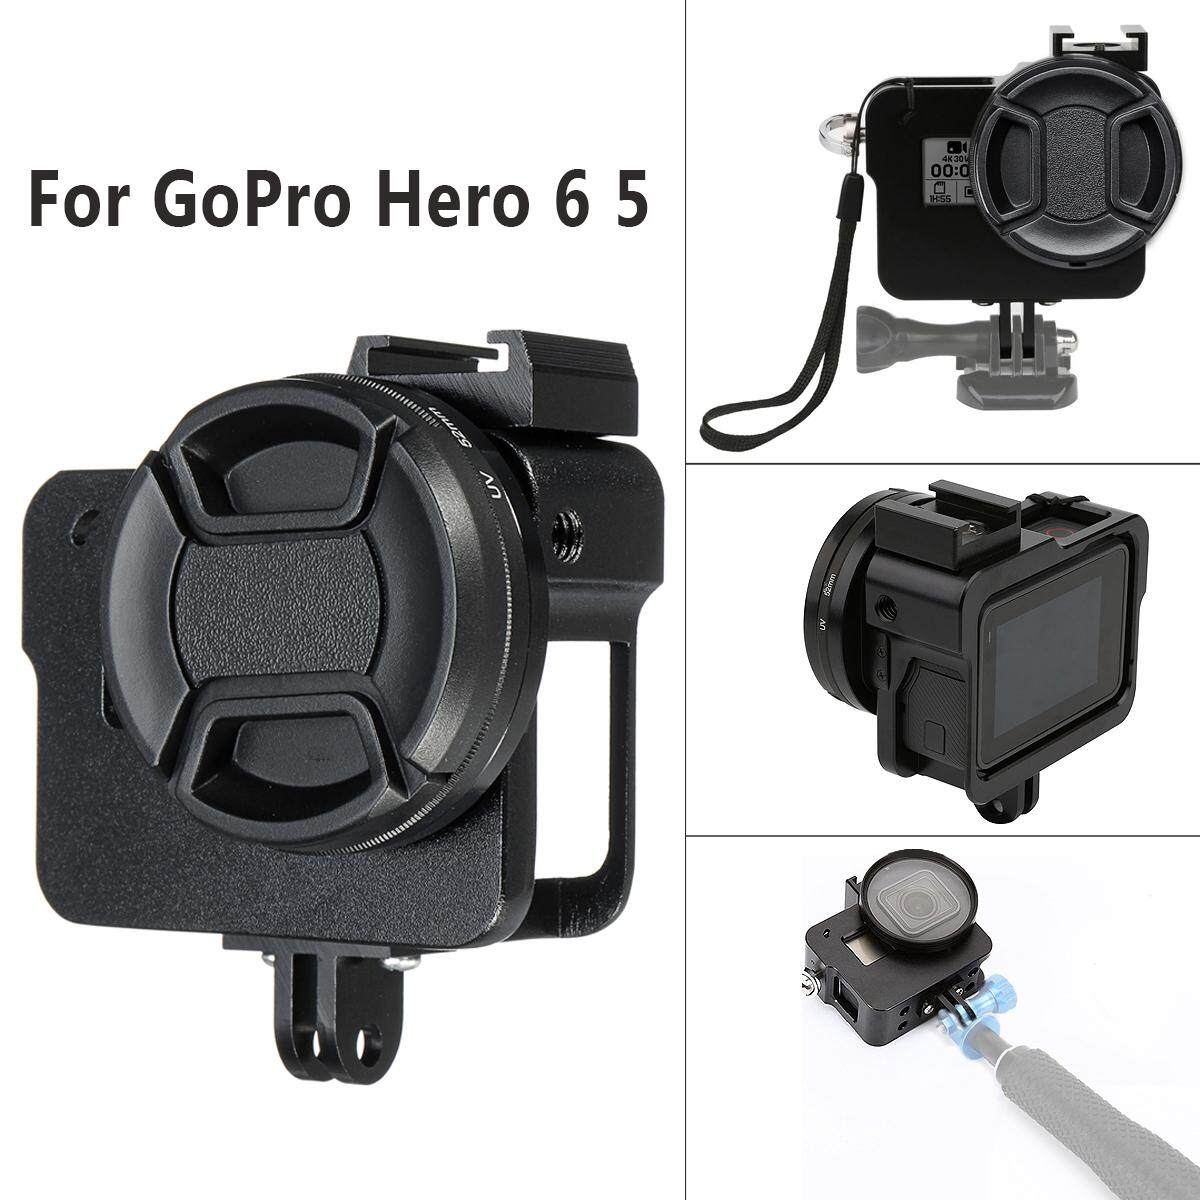 Black Aluminum Alloy Protective Case Skeleton Housing for Go Pro Hero 6 5